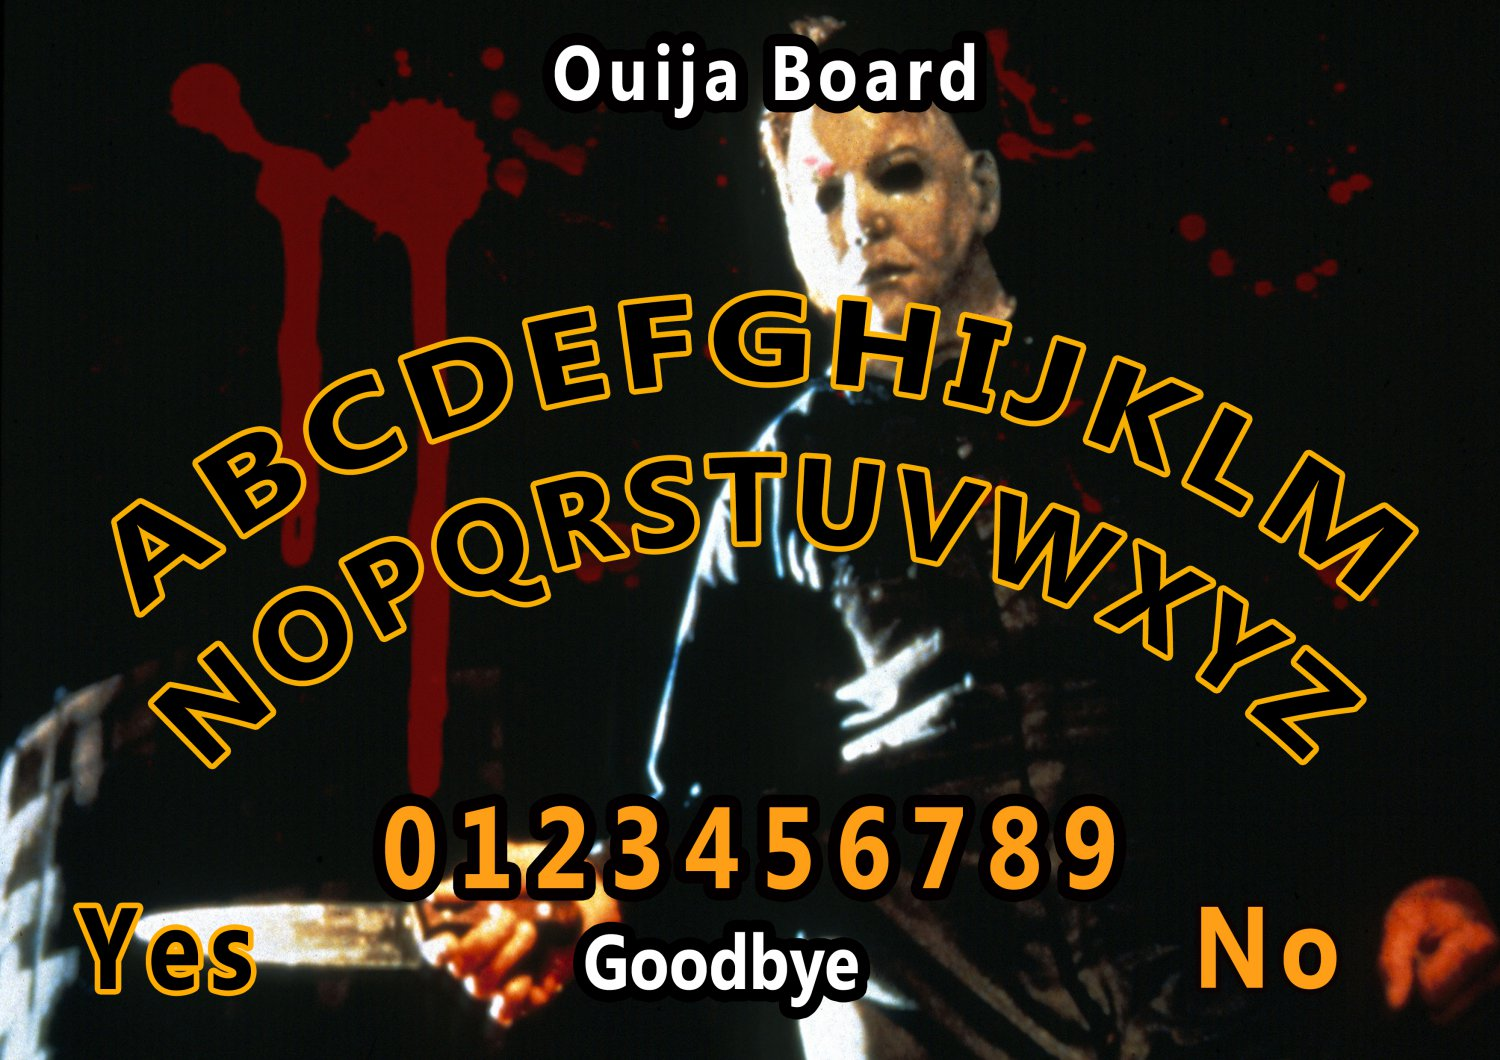 Halloween A4 Laminated Ouija Board / Poster | Ghost Hunting | EVP | Seances. Free UK shipping